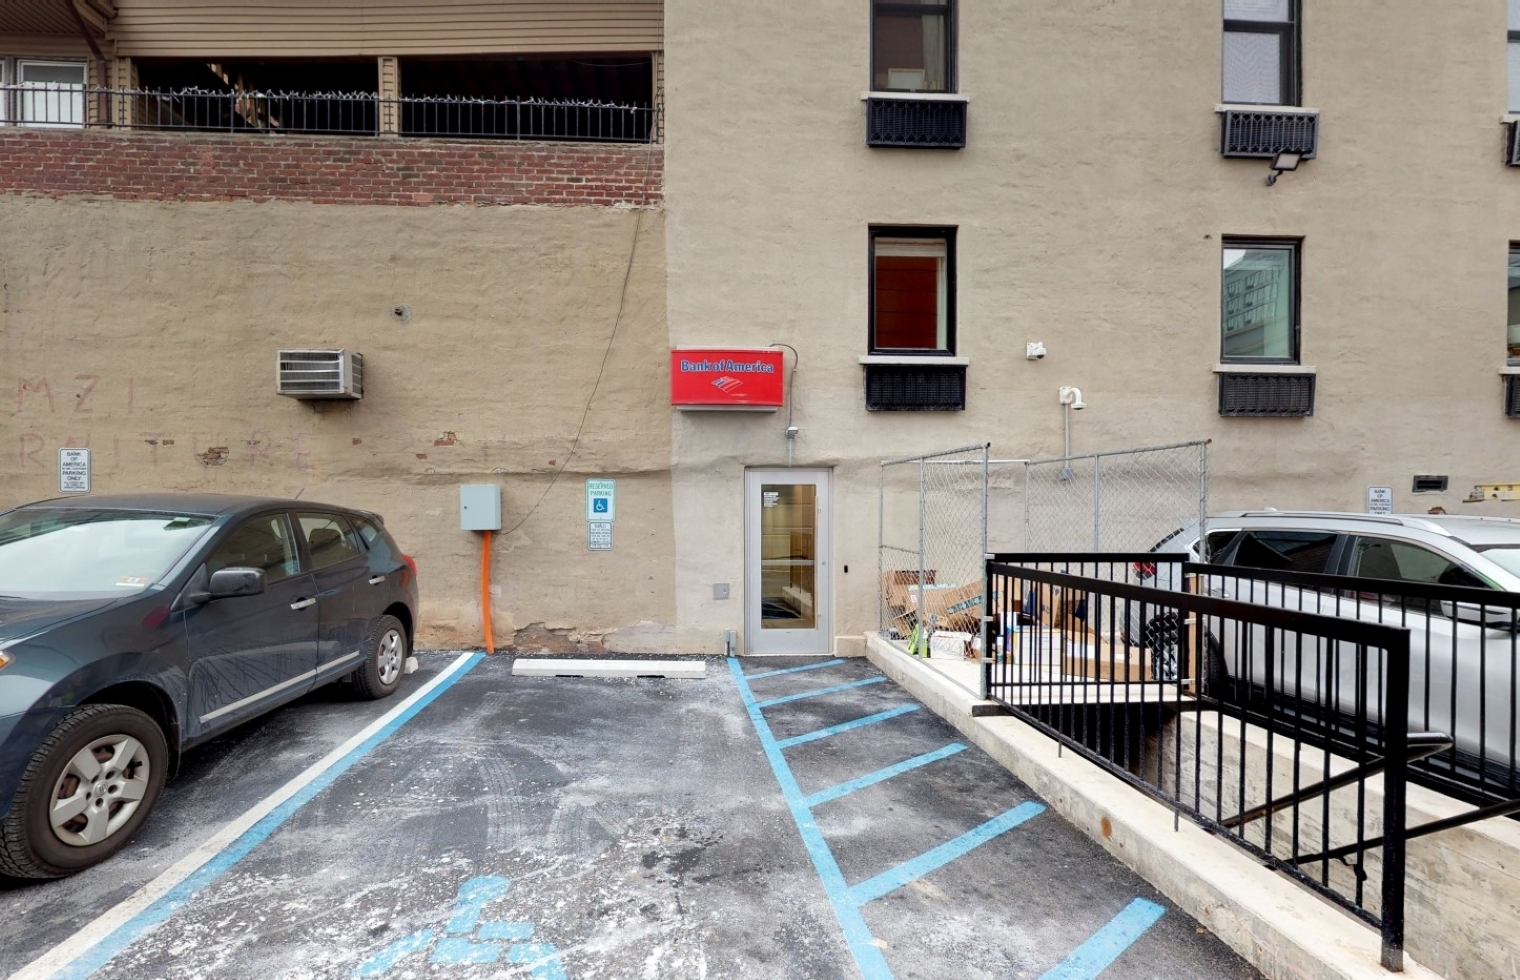 Bank of America financial center with walk-up ATM   880 Bergen Ave, Jersey City, NJ 07306